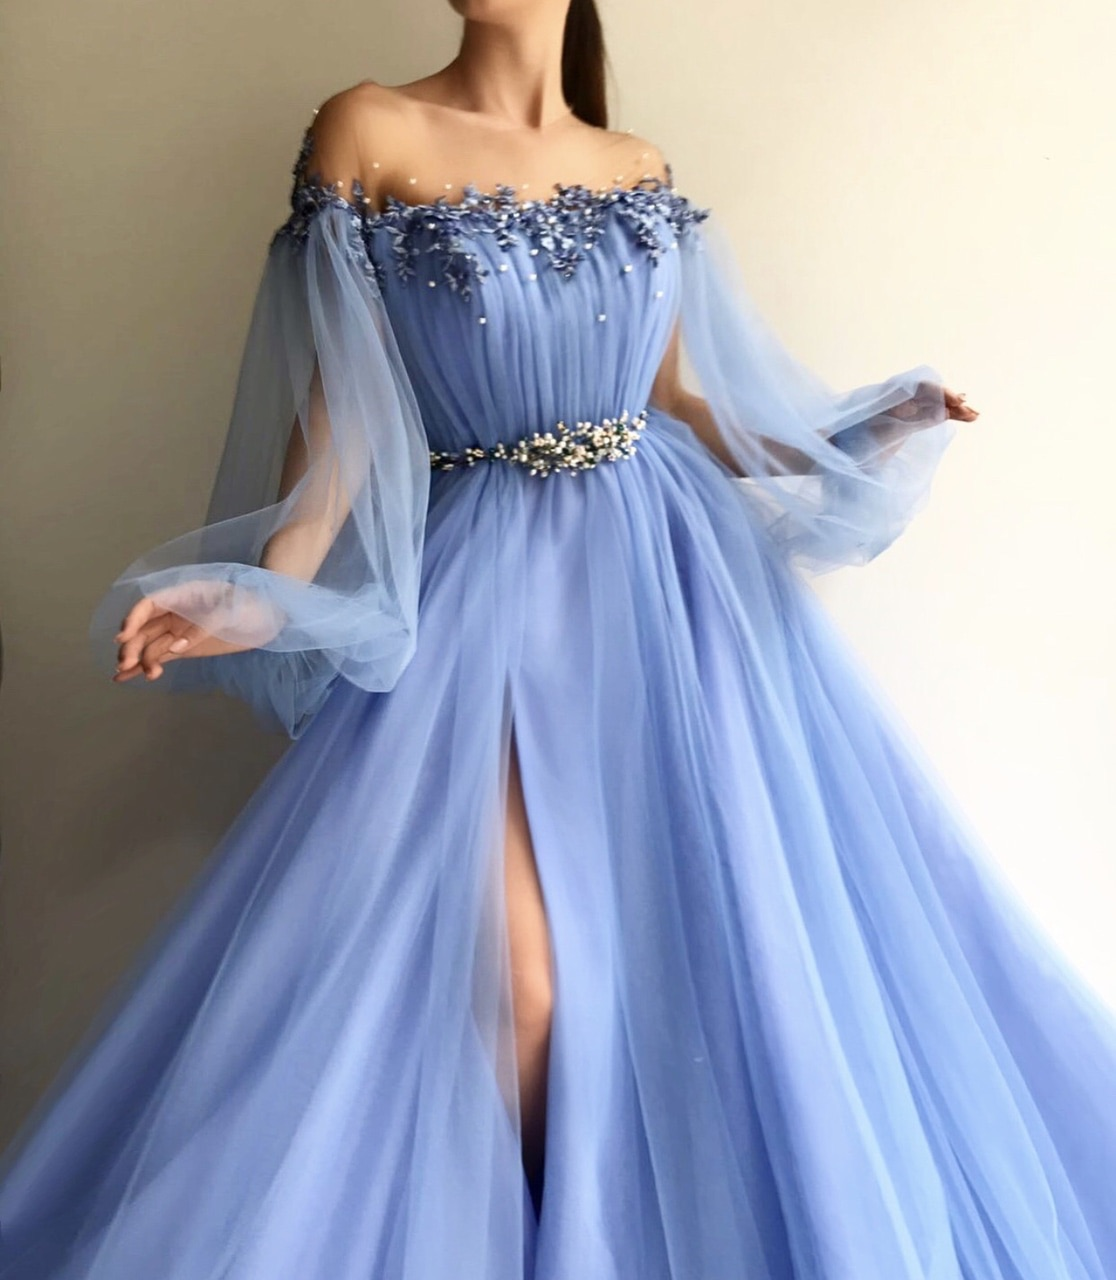 Dreamlike New Style Sky Blue Prom Dress Off The Shoulder Long Sleeves Evening Dress Appliques Bead Party Dress From Sofiedress